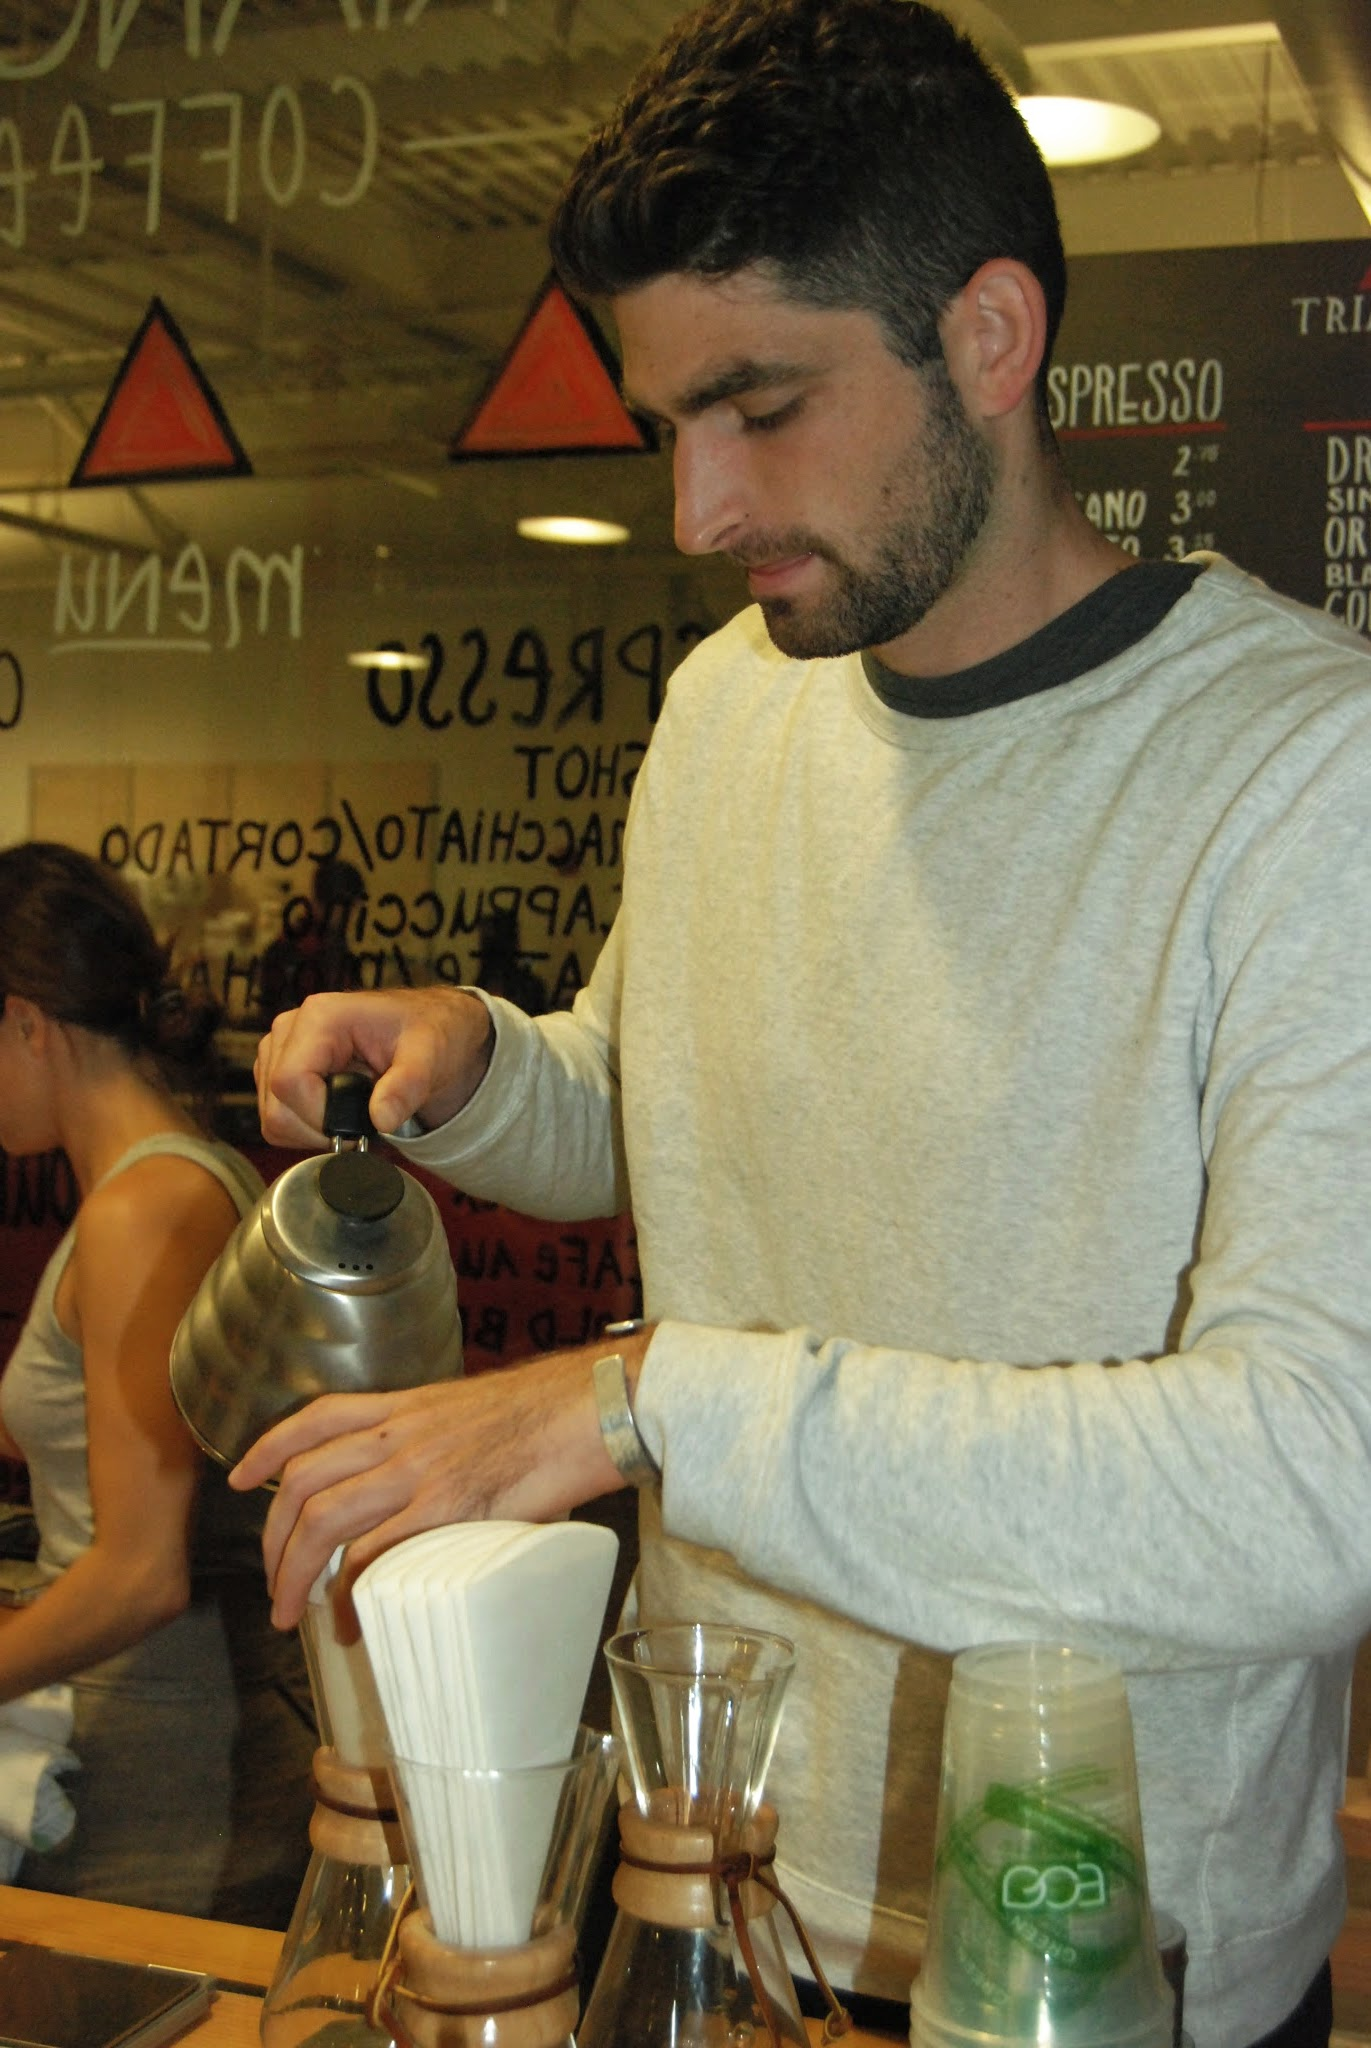 Triangle Coffee co-founder, Ottavio Siani, sharesthe barista shifts with his two other co-founders.